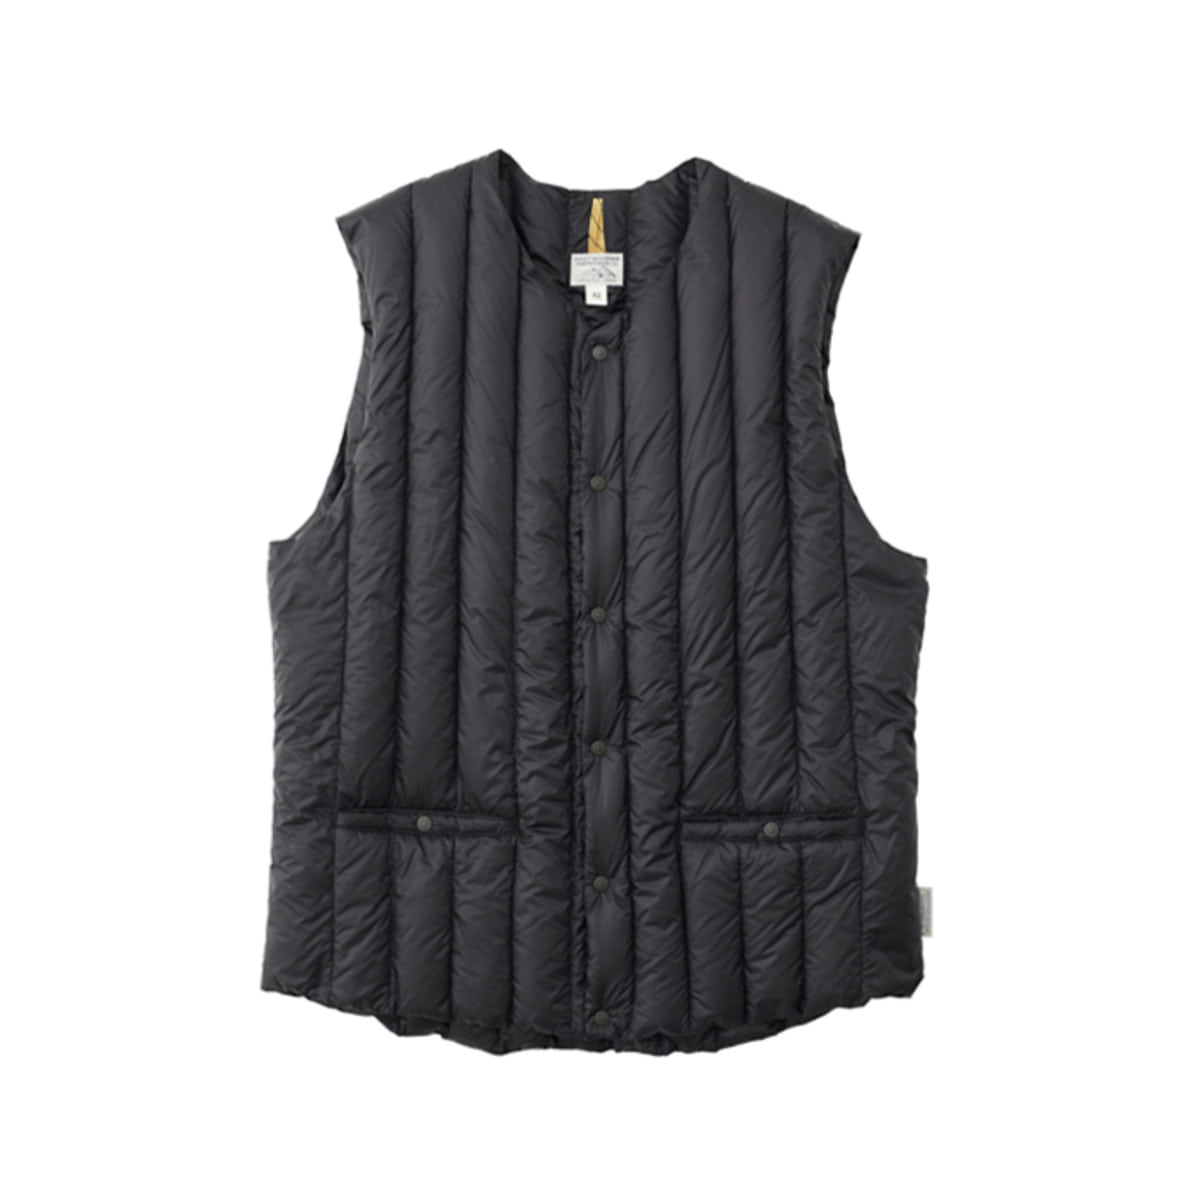 [ROCKY MOUNTAIN] SIX MONTH VEST 'BLACK'